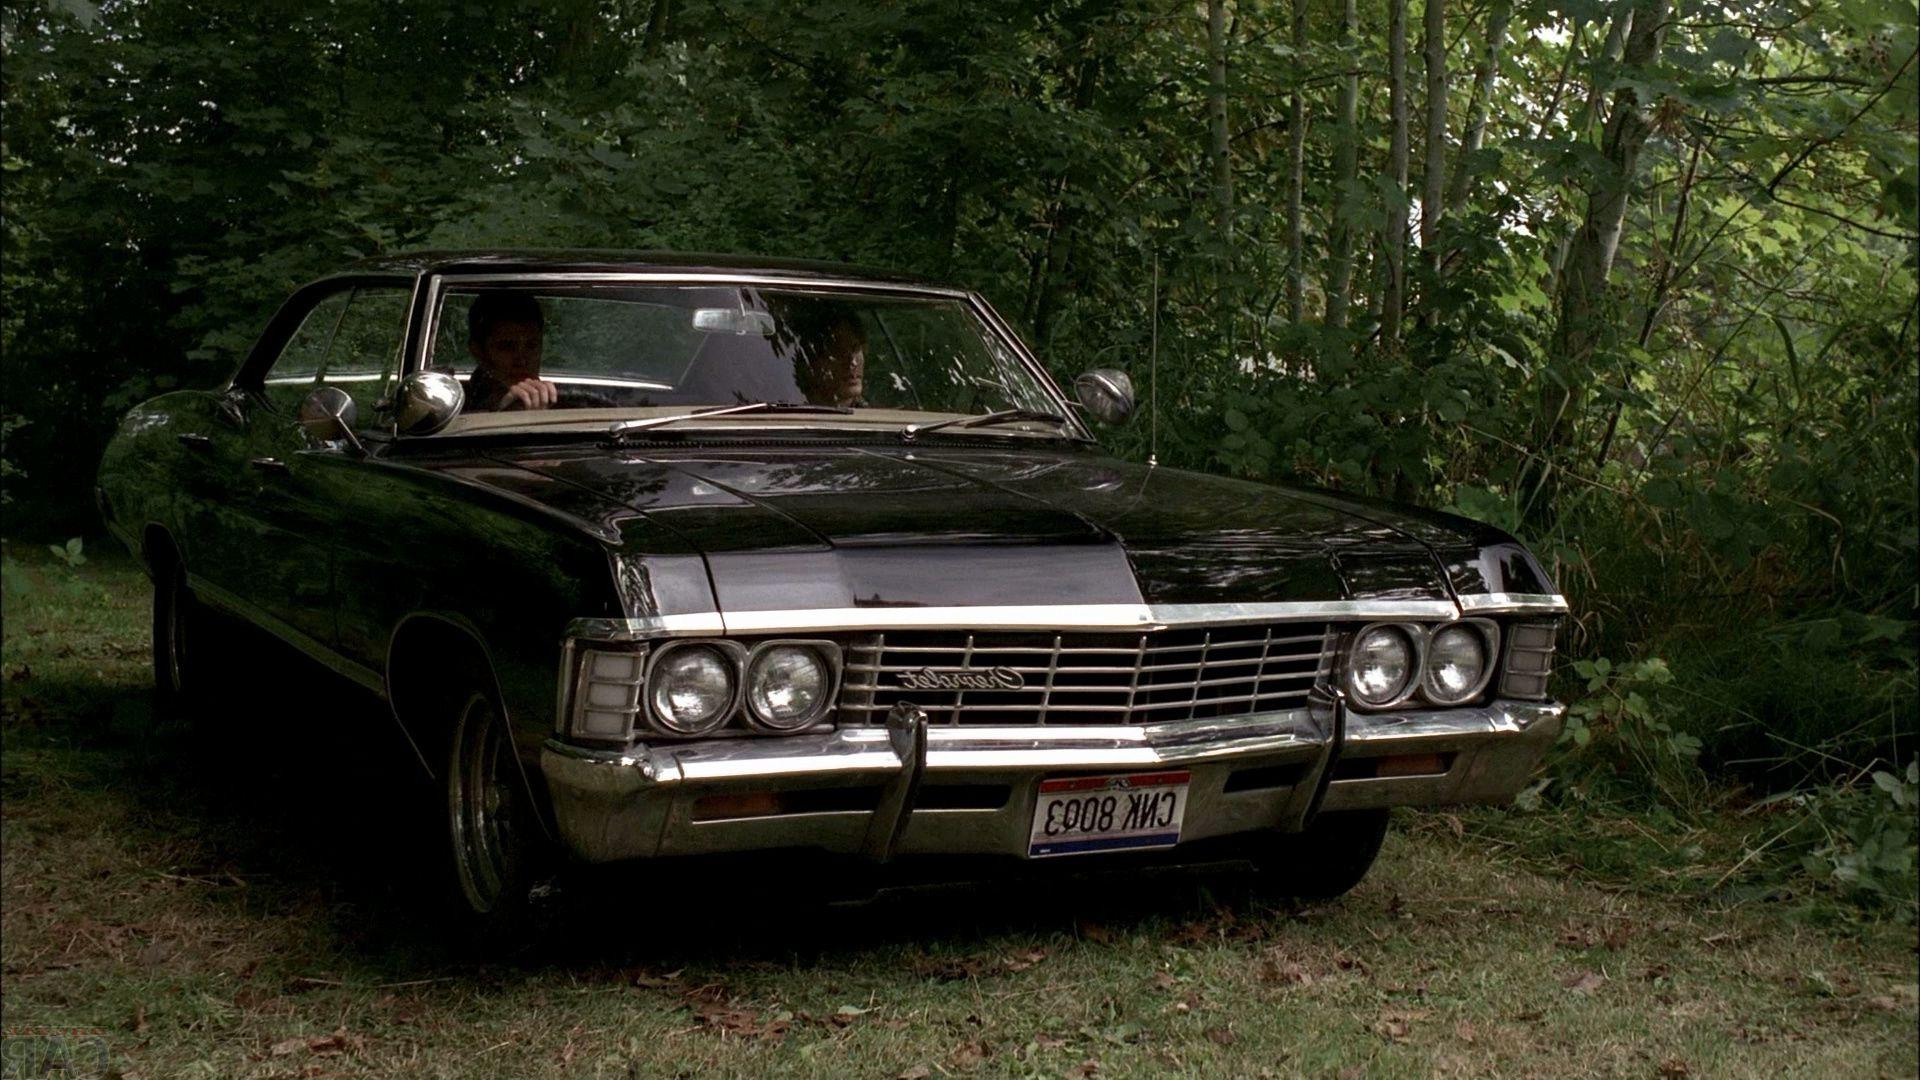 Chevrolet Impala Wallpapers HD Full HD Pictures 1920x1080